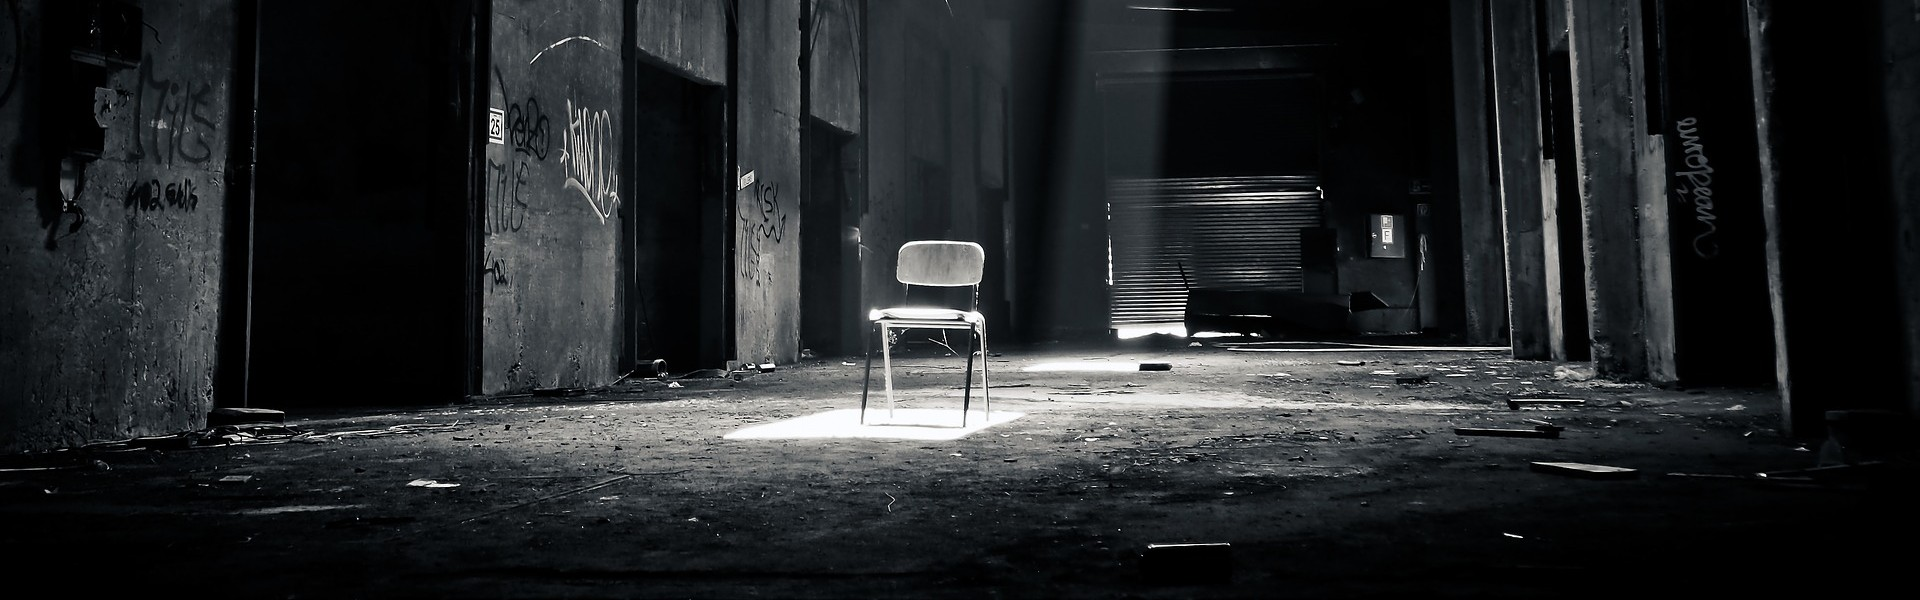 Chair in a Lost place by MichaelGaida Pixabay